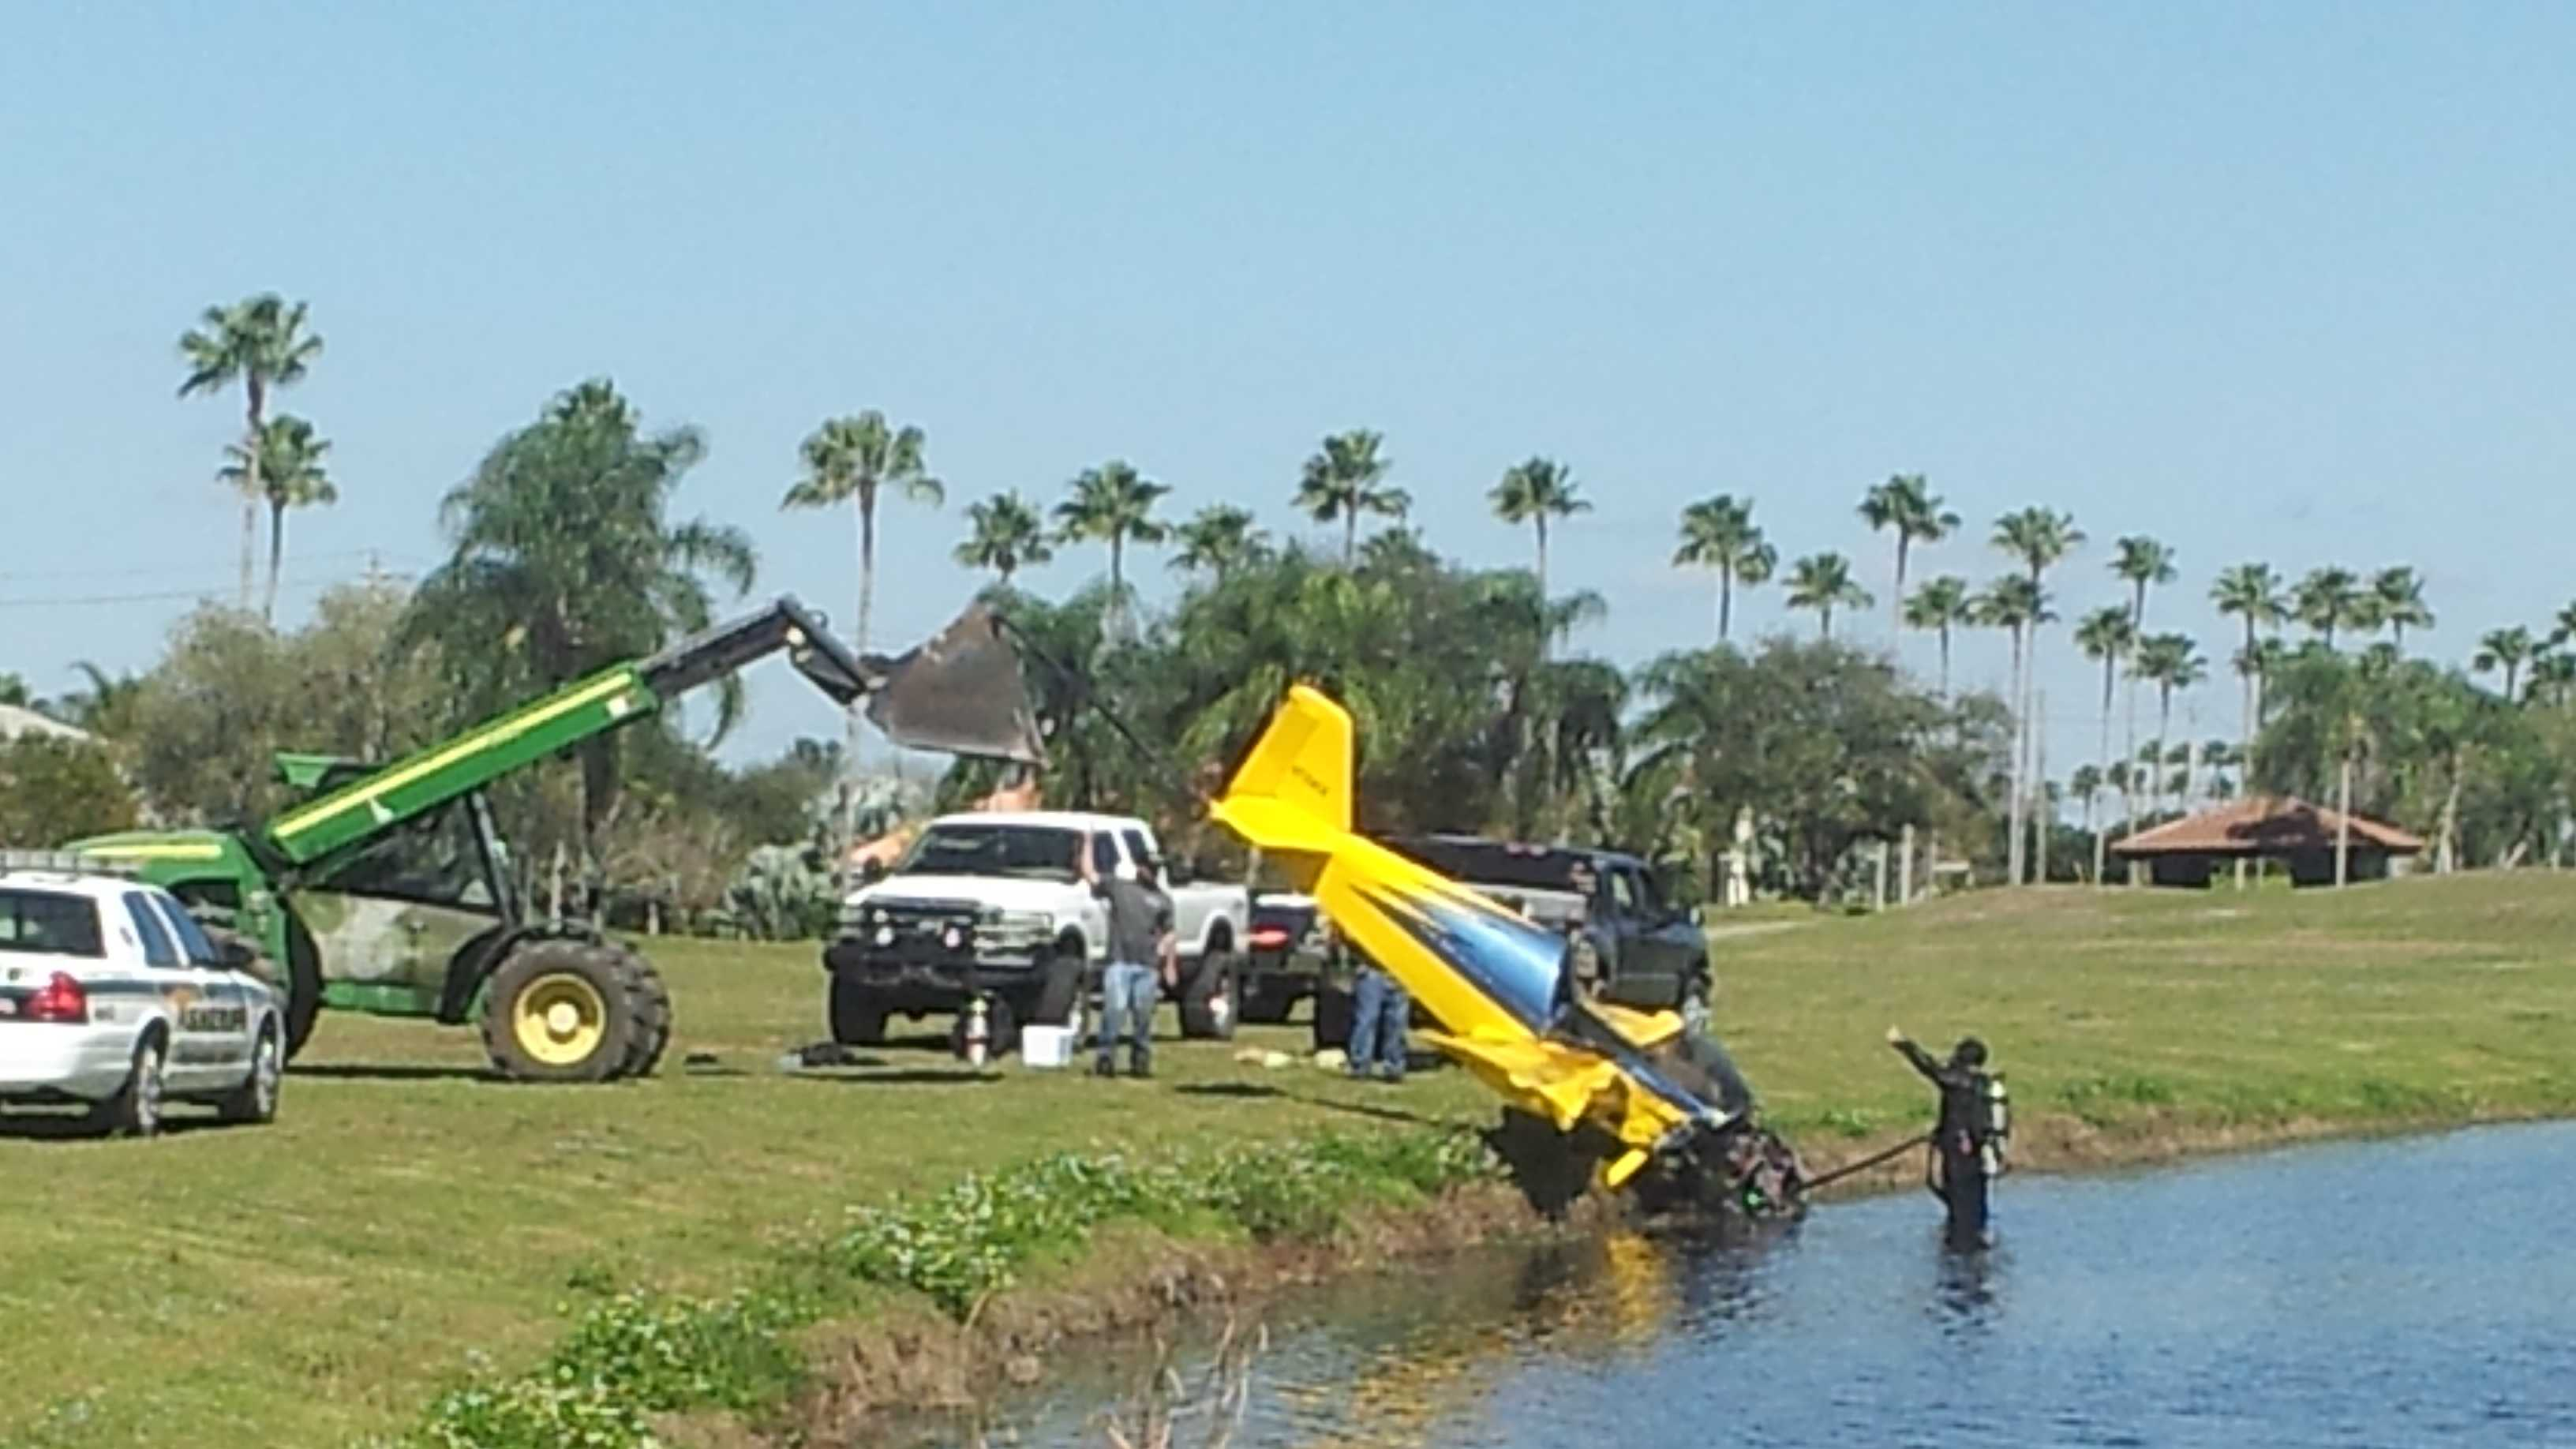 NTSB and FAA crews on Tuesday arrived at the scene of a plane crash that killed a pilot Monday in Wellington.